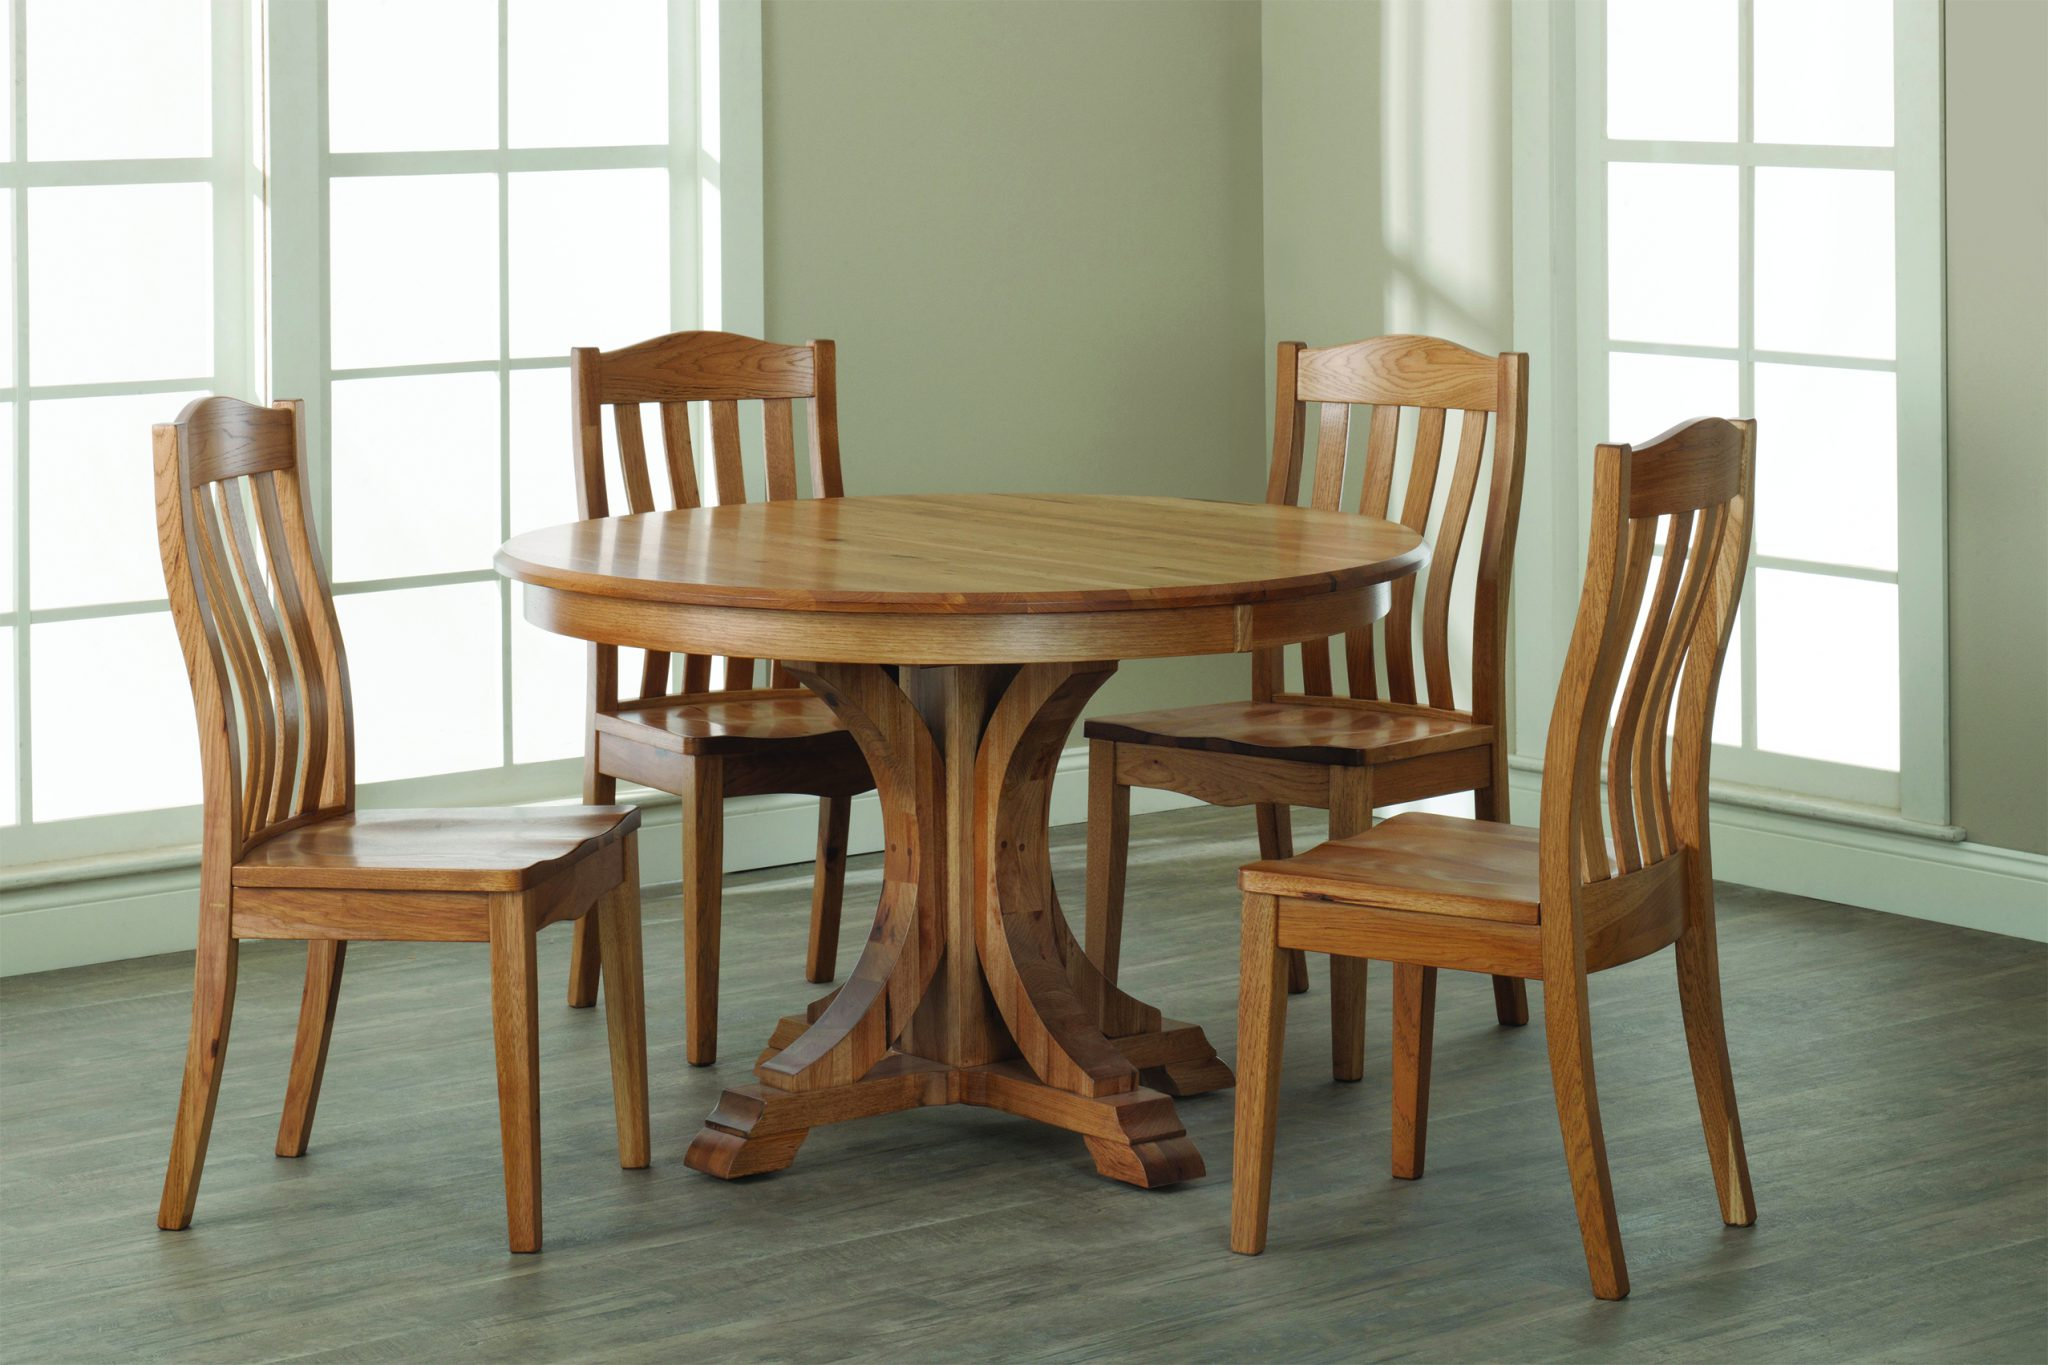 Buckeye single pedestal table with regal chairs